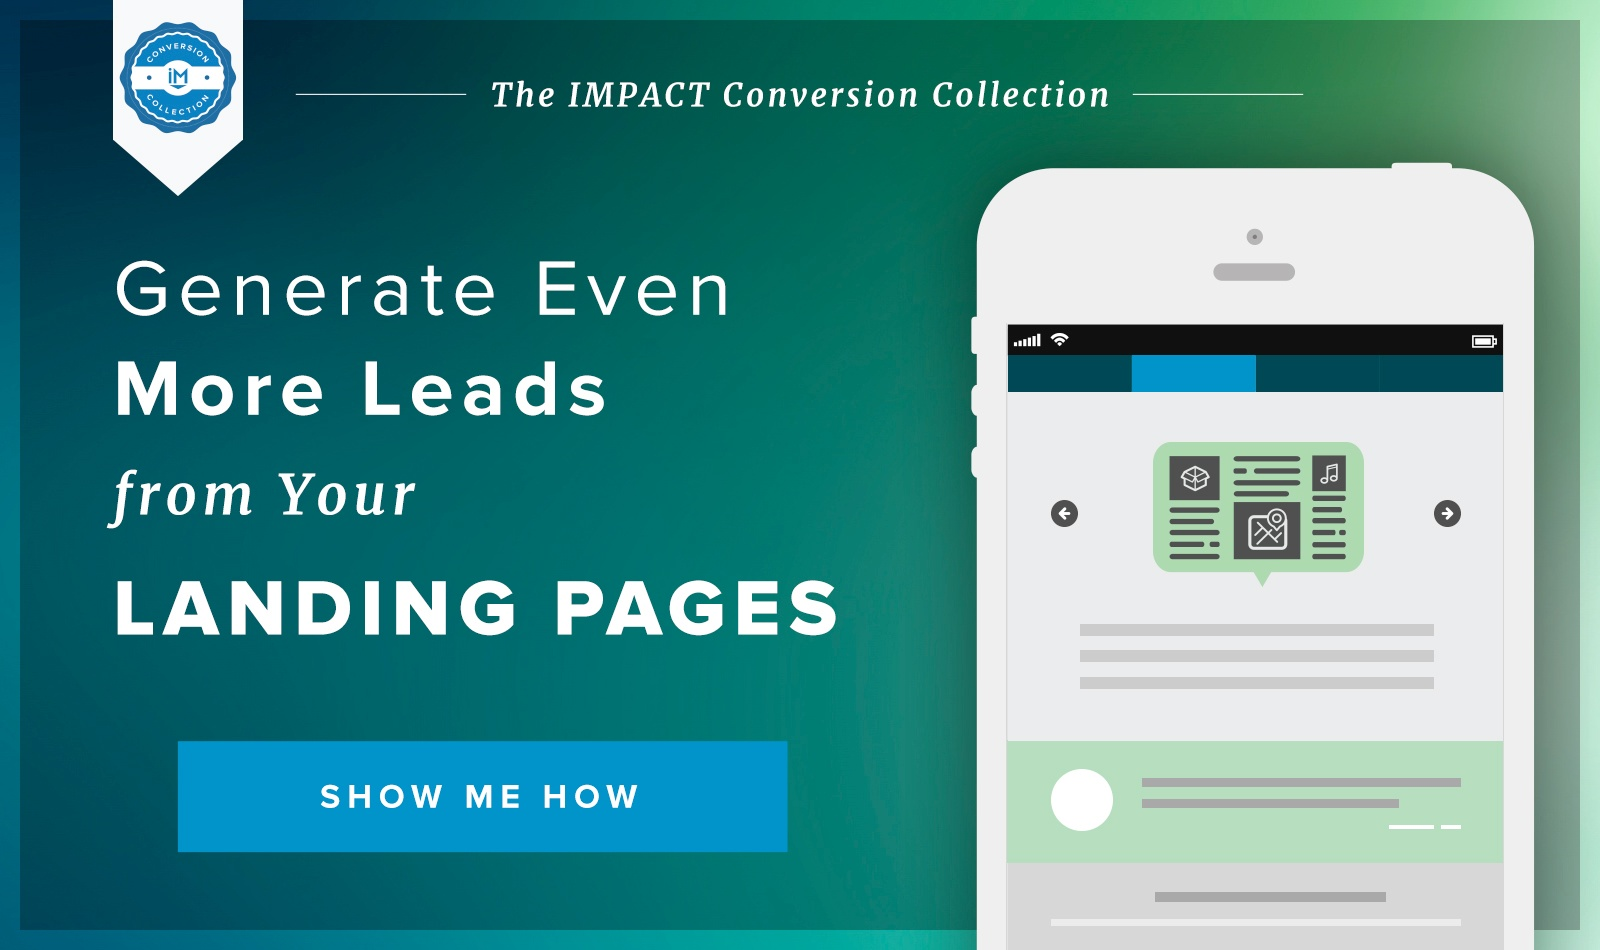 generate-more-leads-from-landing-pages